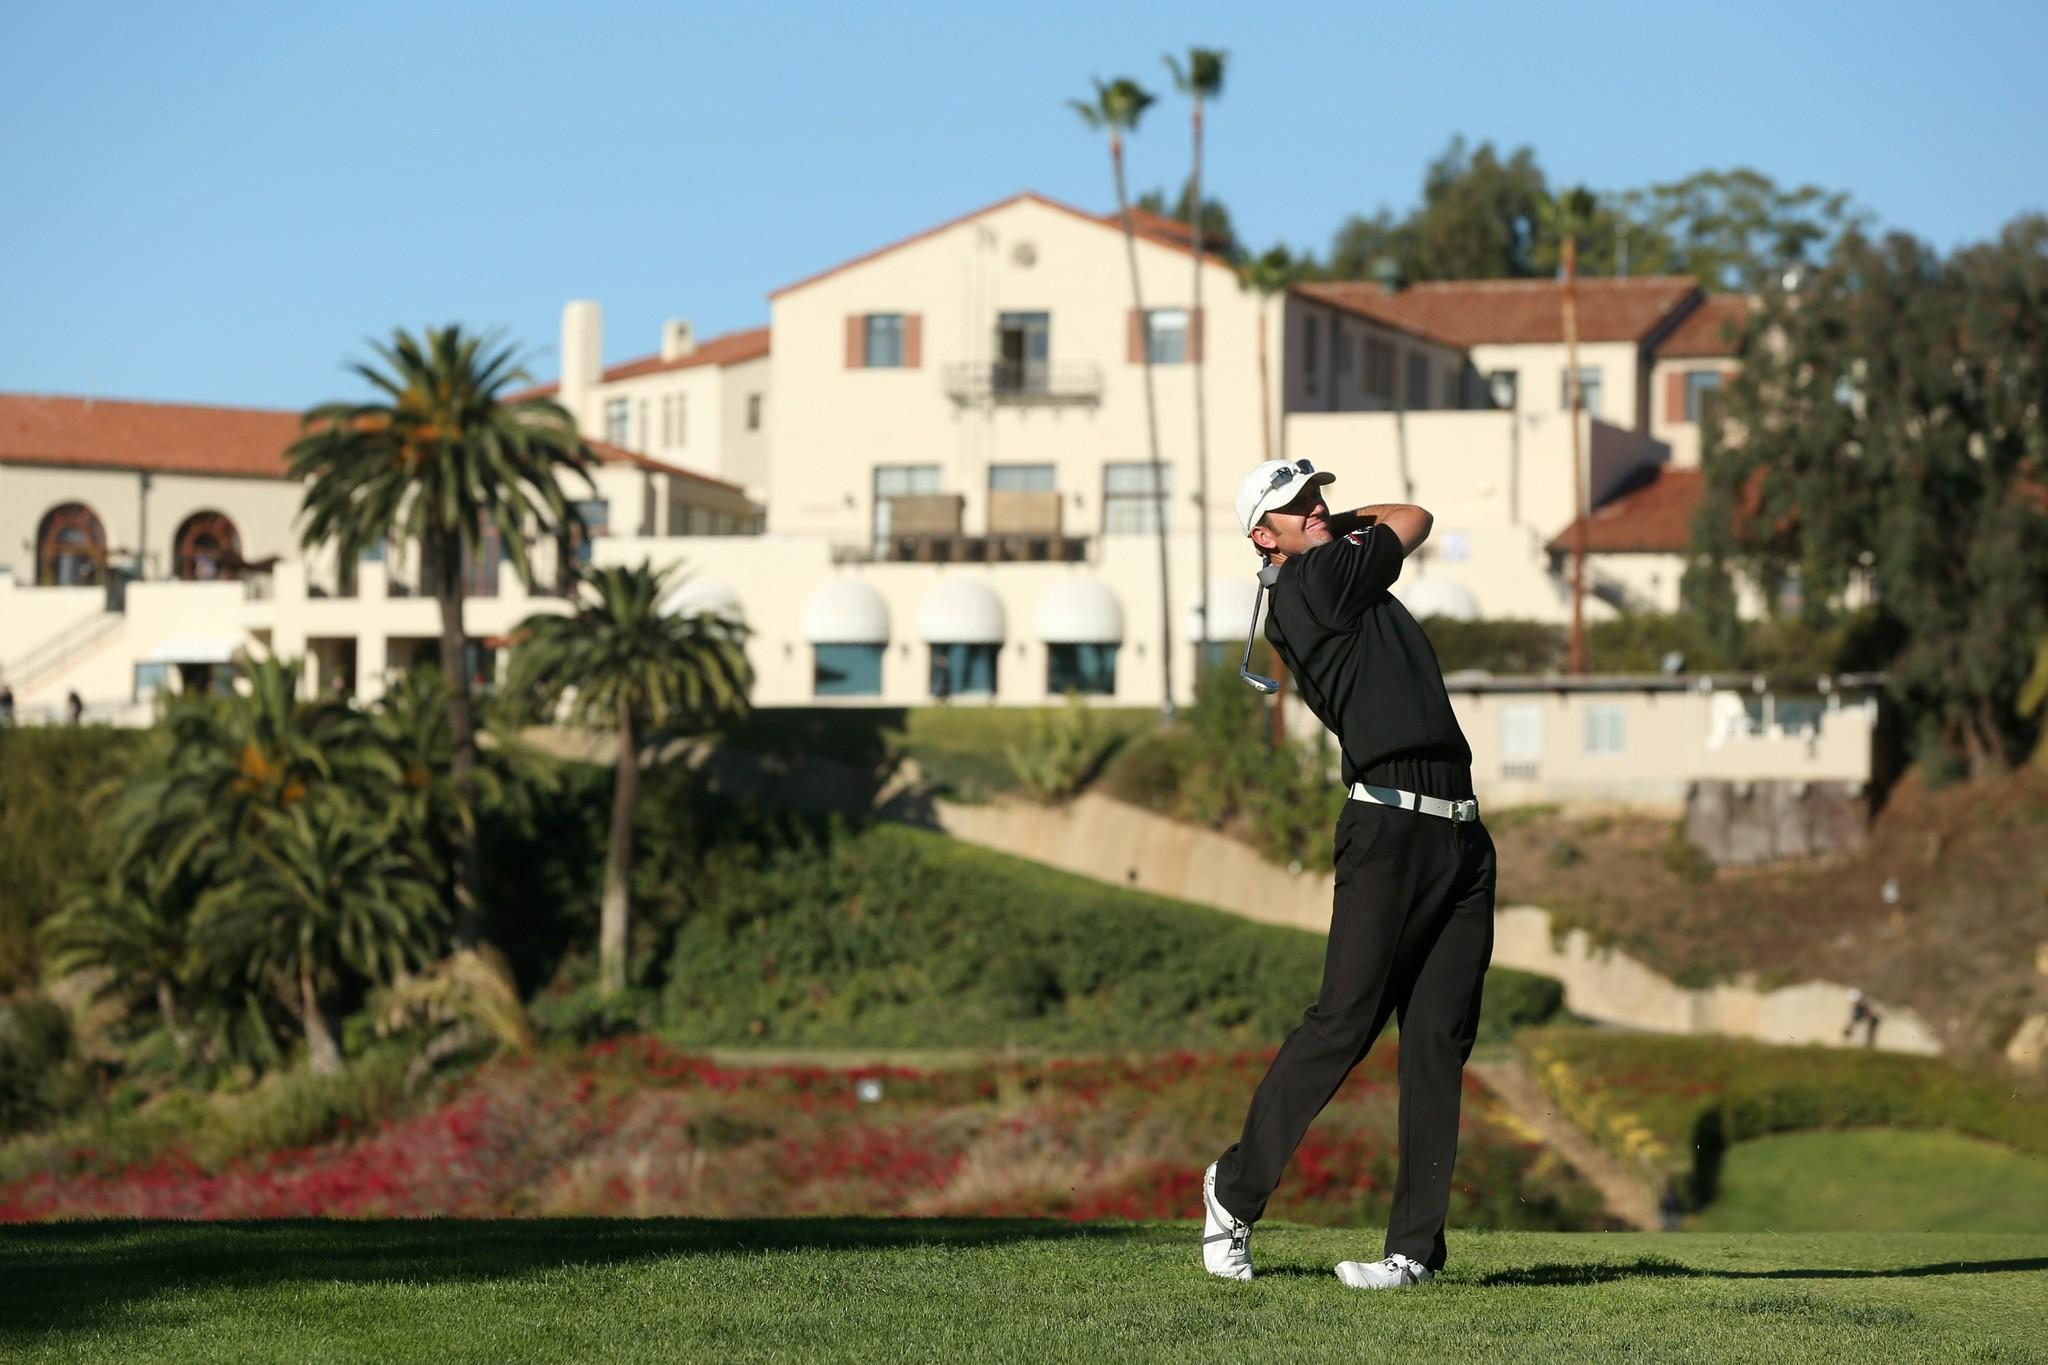 Jason Alred nearly toppled the course record at the Riviera Country Club on Friday during the second round of the Northern Trust Open. He finished with a seven-under 64, the record is 61.